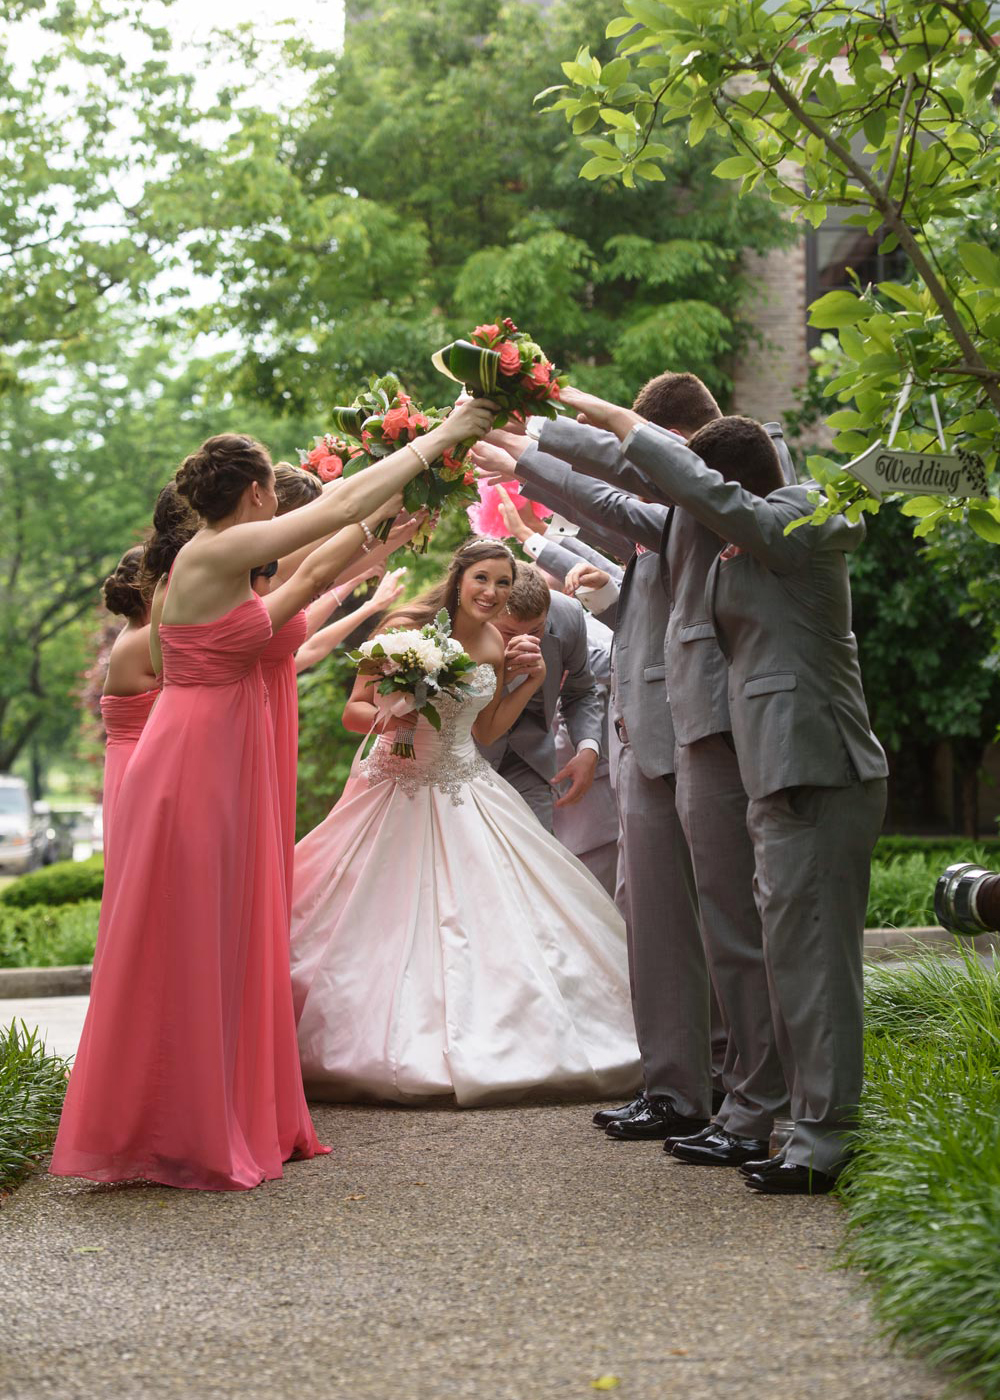 wedding_photographer_lexington_ky_studio_walz104.jpg